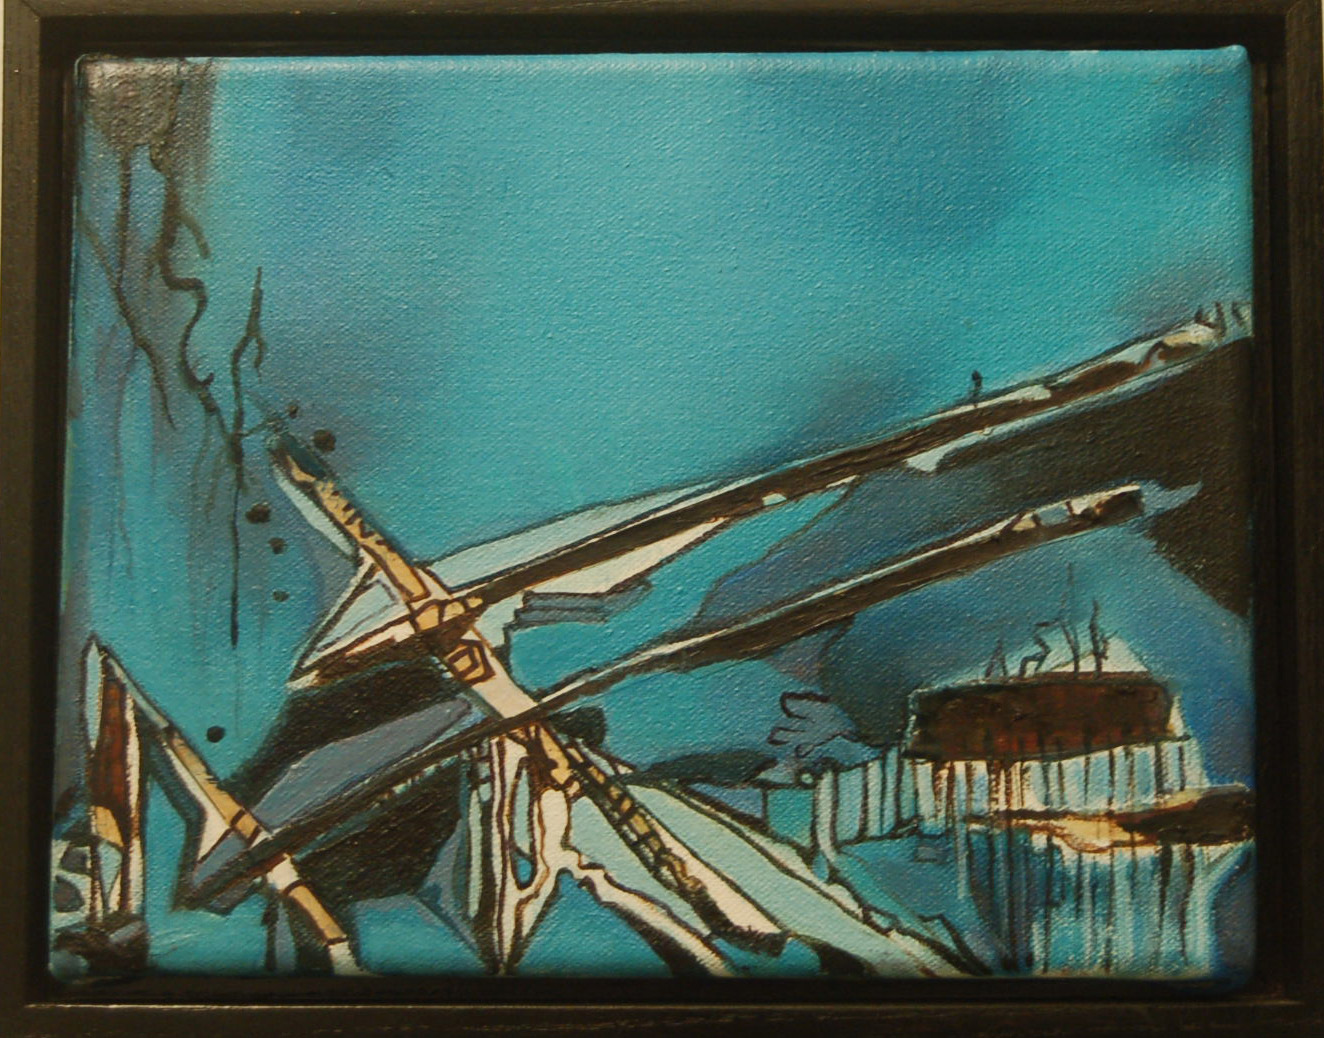 Suspended In Blue, 10 x 8, framed, $300